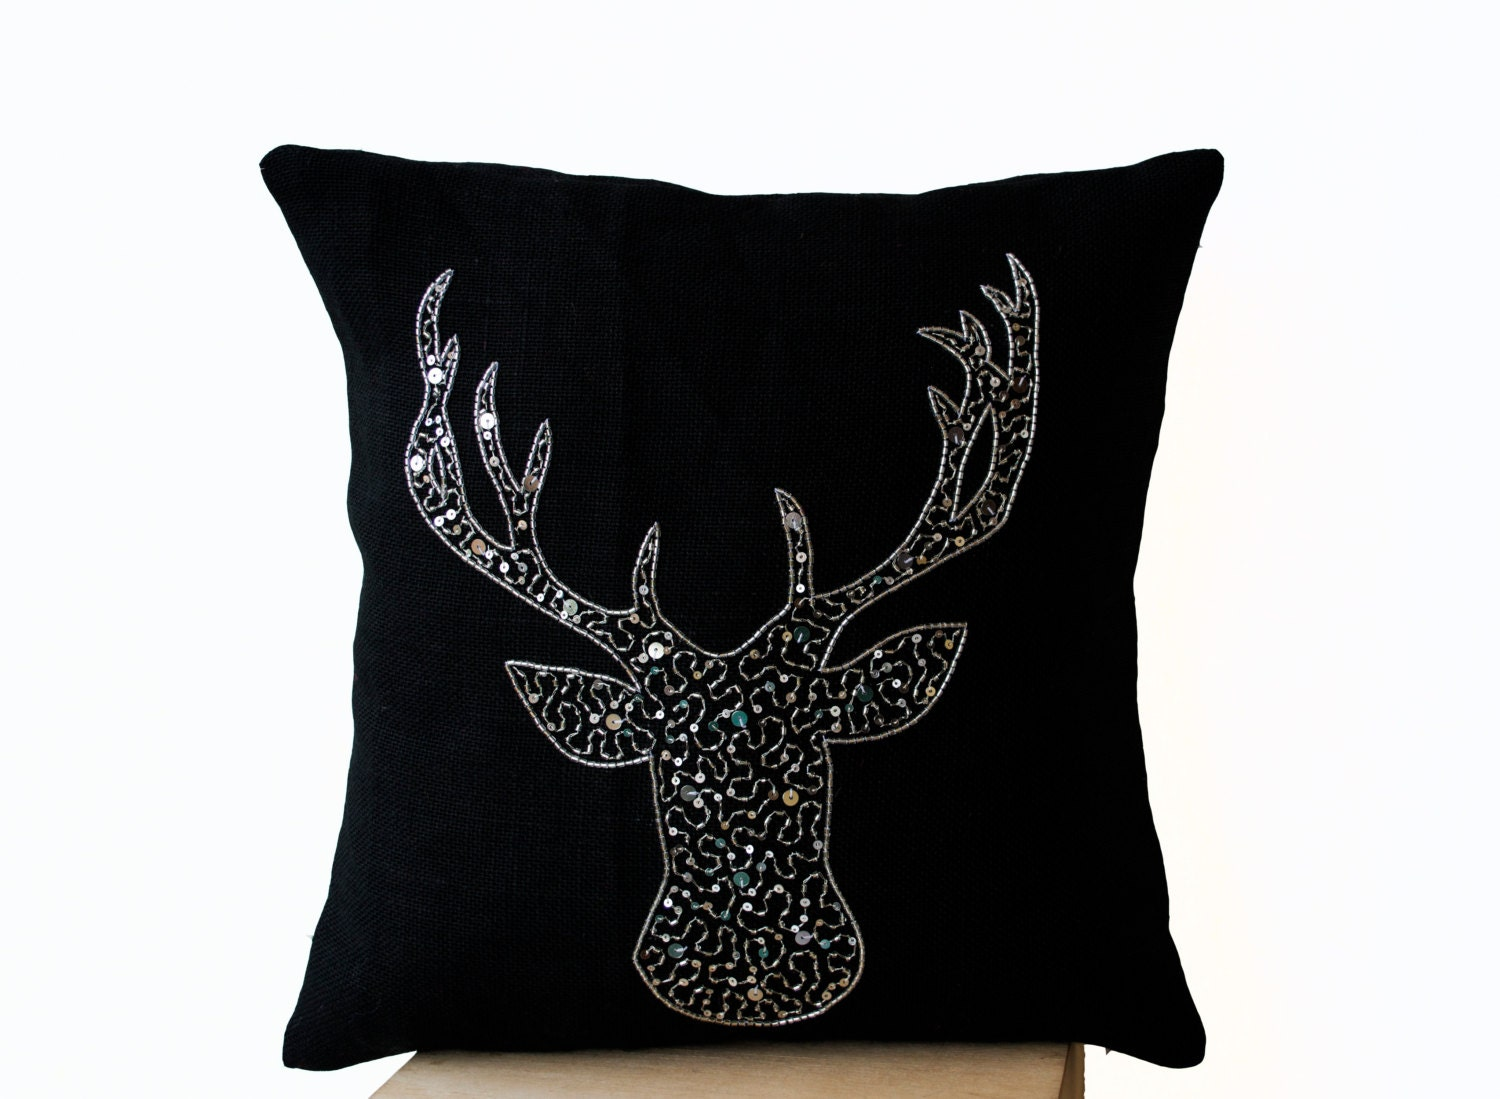 Deer pillows animal pillow stag embroidered in silver sequin